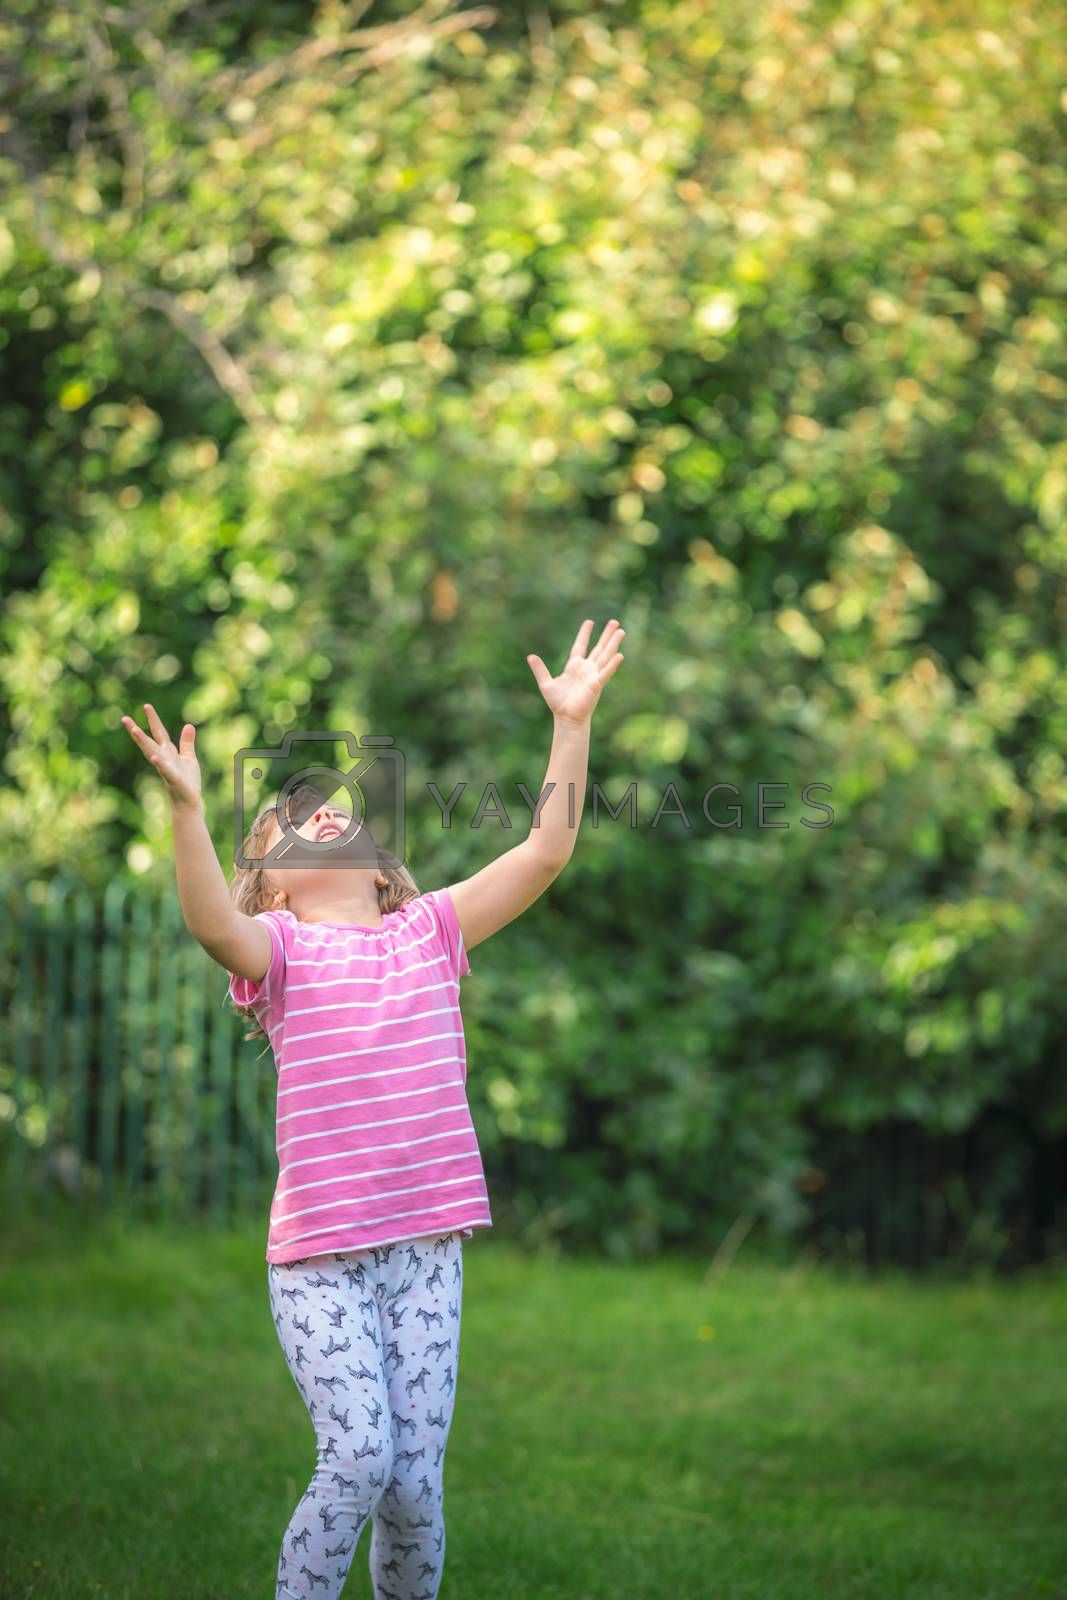 Little girl with arm spread open trying to catch the ball thrown high in the air